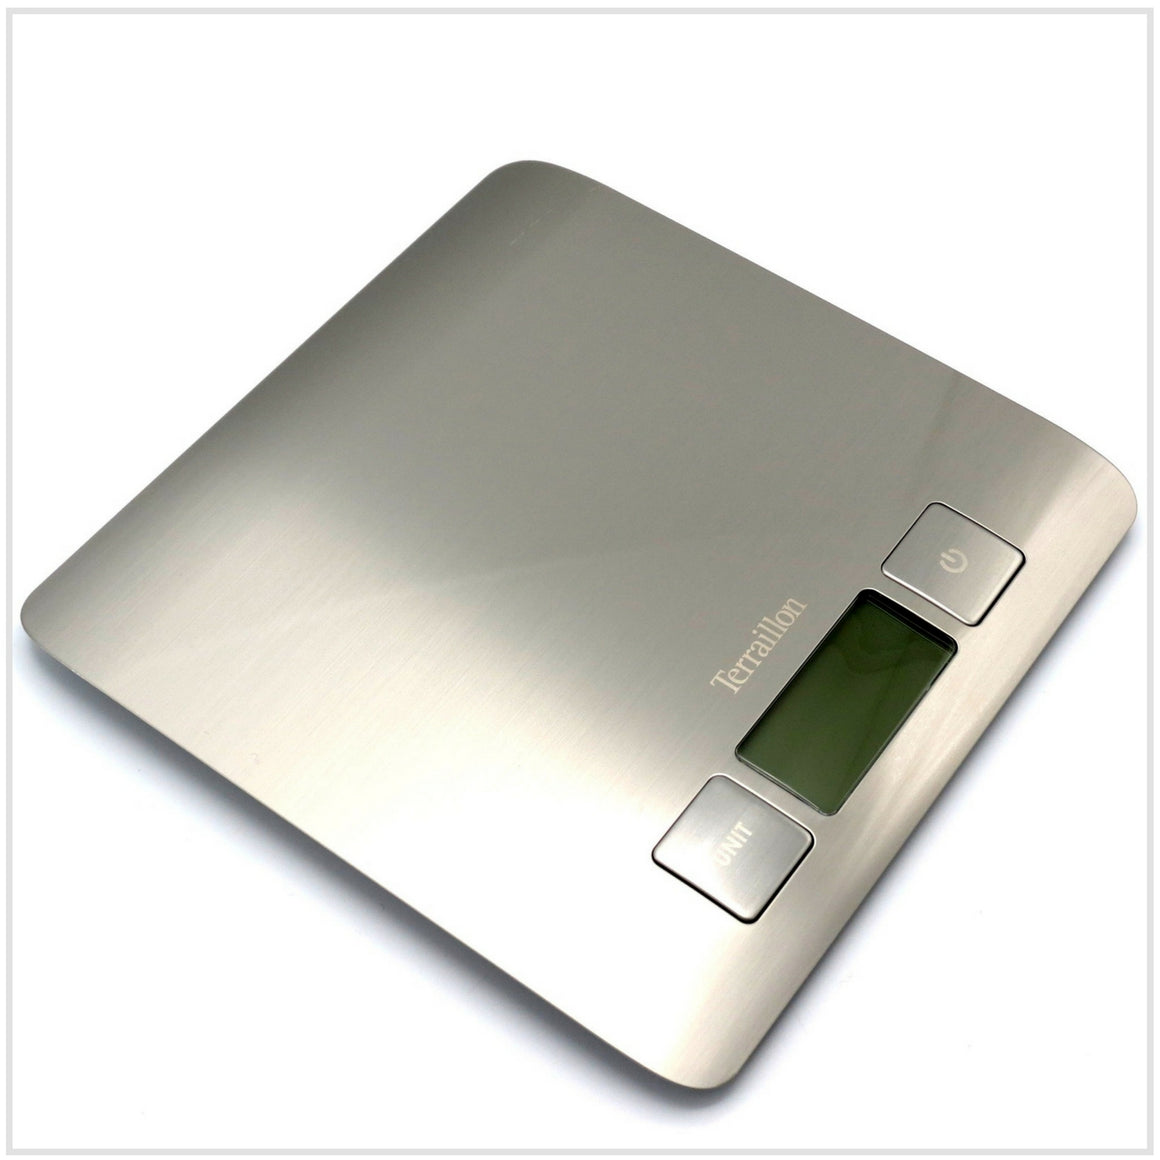 Terraillon Ultra Slim Stainless Steel Scale